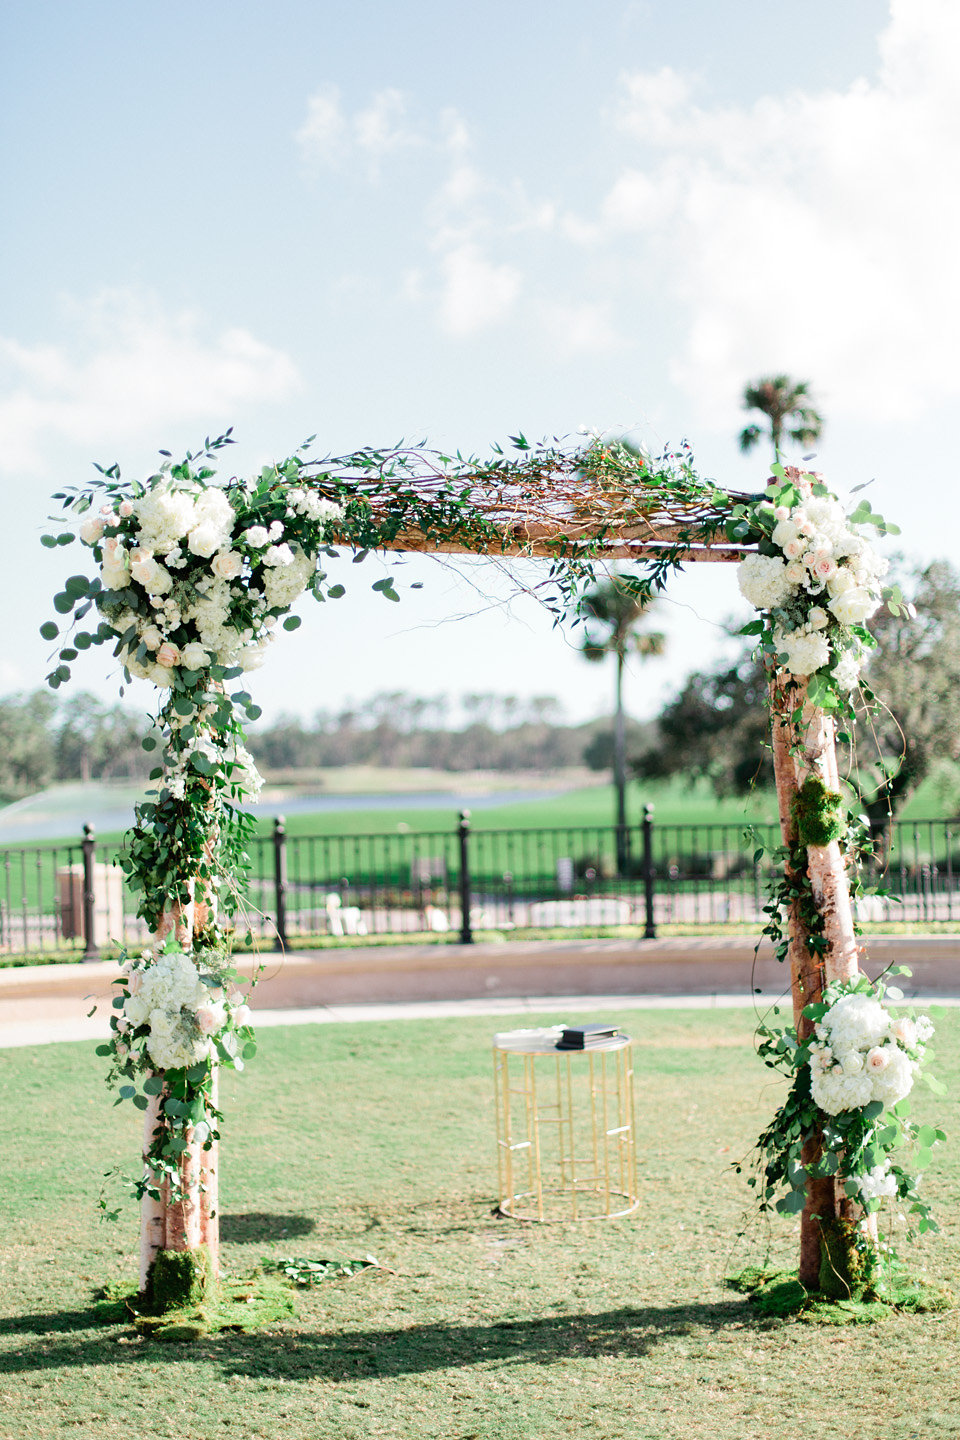 Blush and ivory blooms with greenery on wedding arch TPC Sawgrass Jacksonville  Blush Wedding at TPC Sawgrass Wedding Ponte Vedra Beach  Jacksonville Wedding Planner Blue Ribbon Weddings  Jacksonville Wedding Photographer Debra Eby Photography  Wedding Ceremony & Reception at TPC Sawgrass Jacksonville